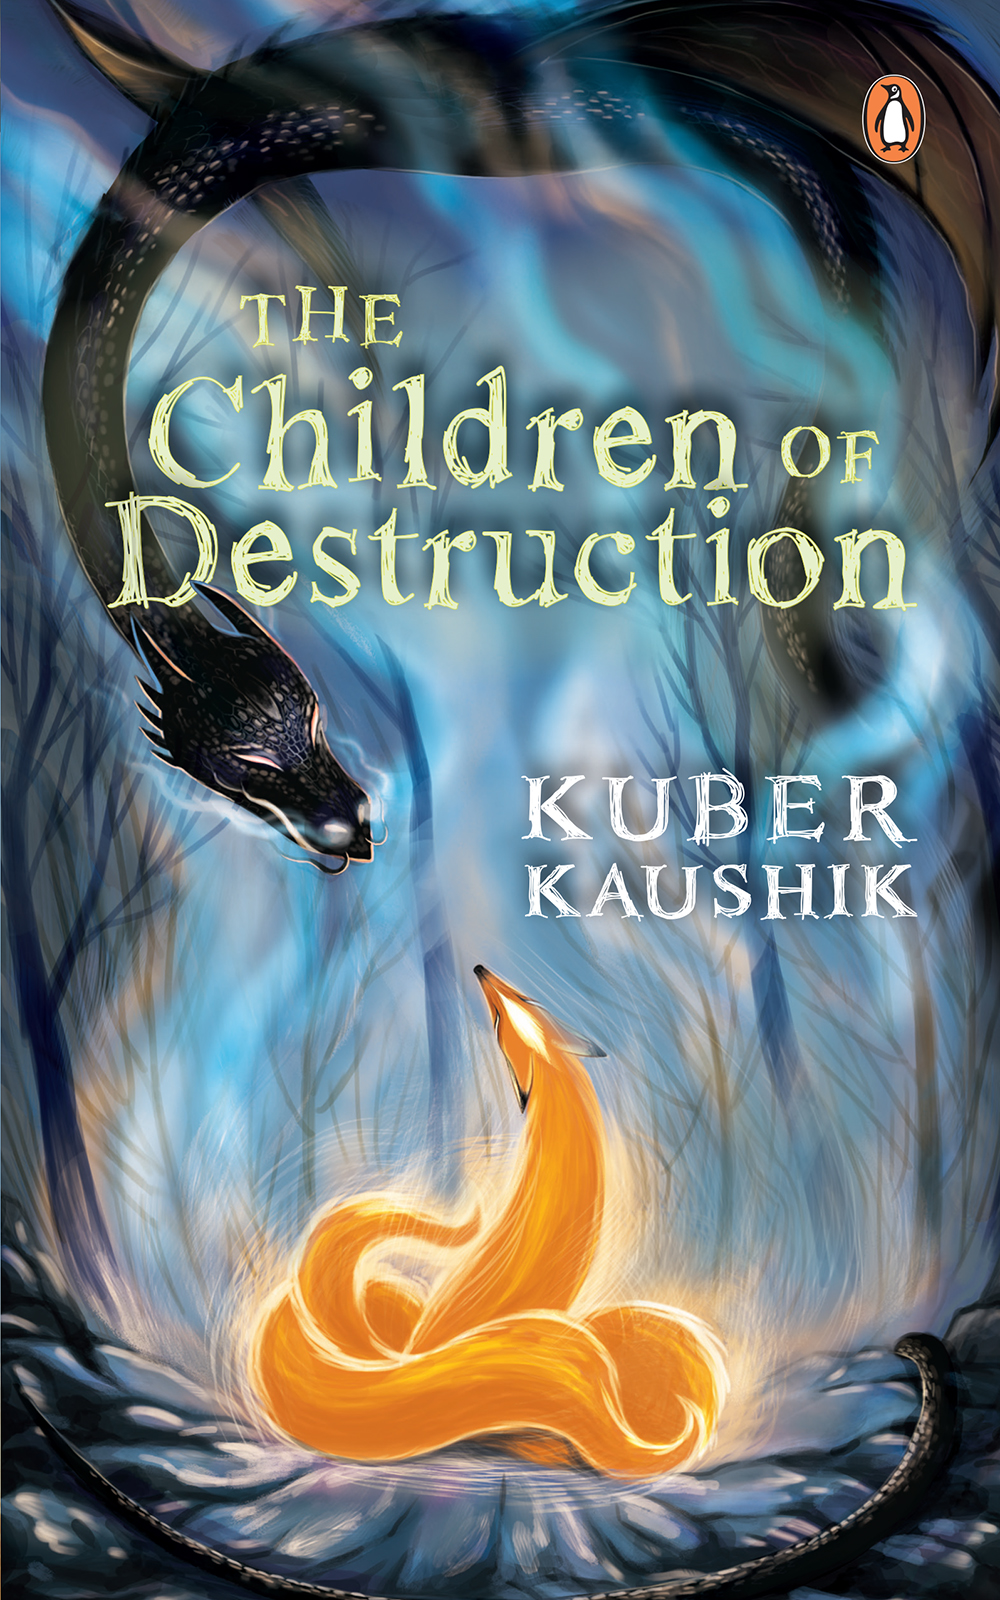 The Children of Destruction